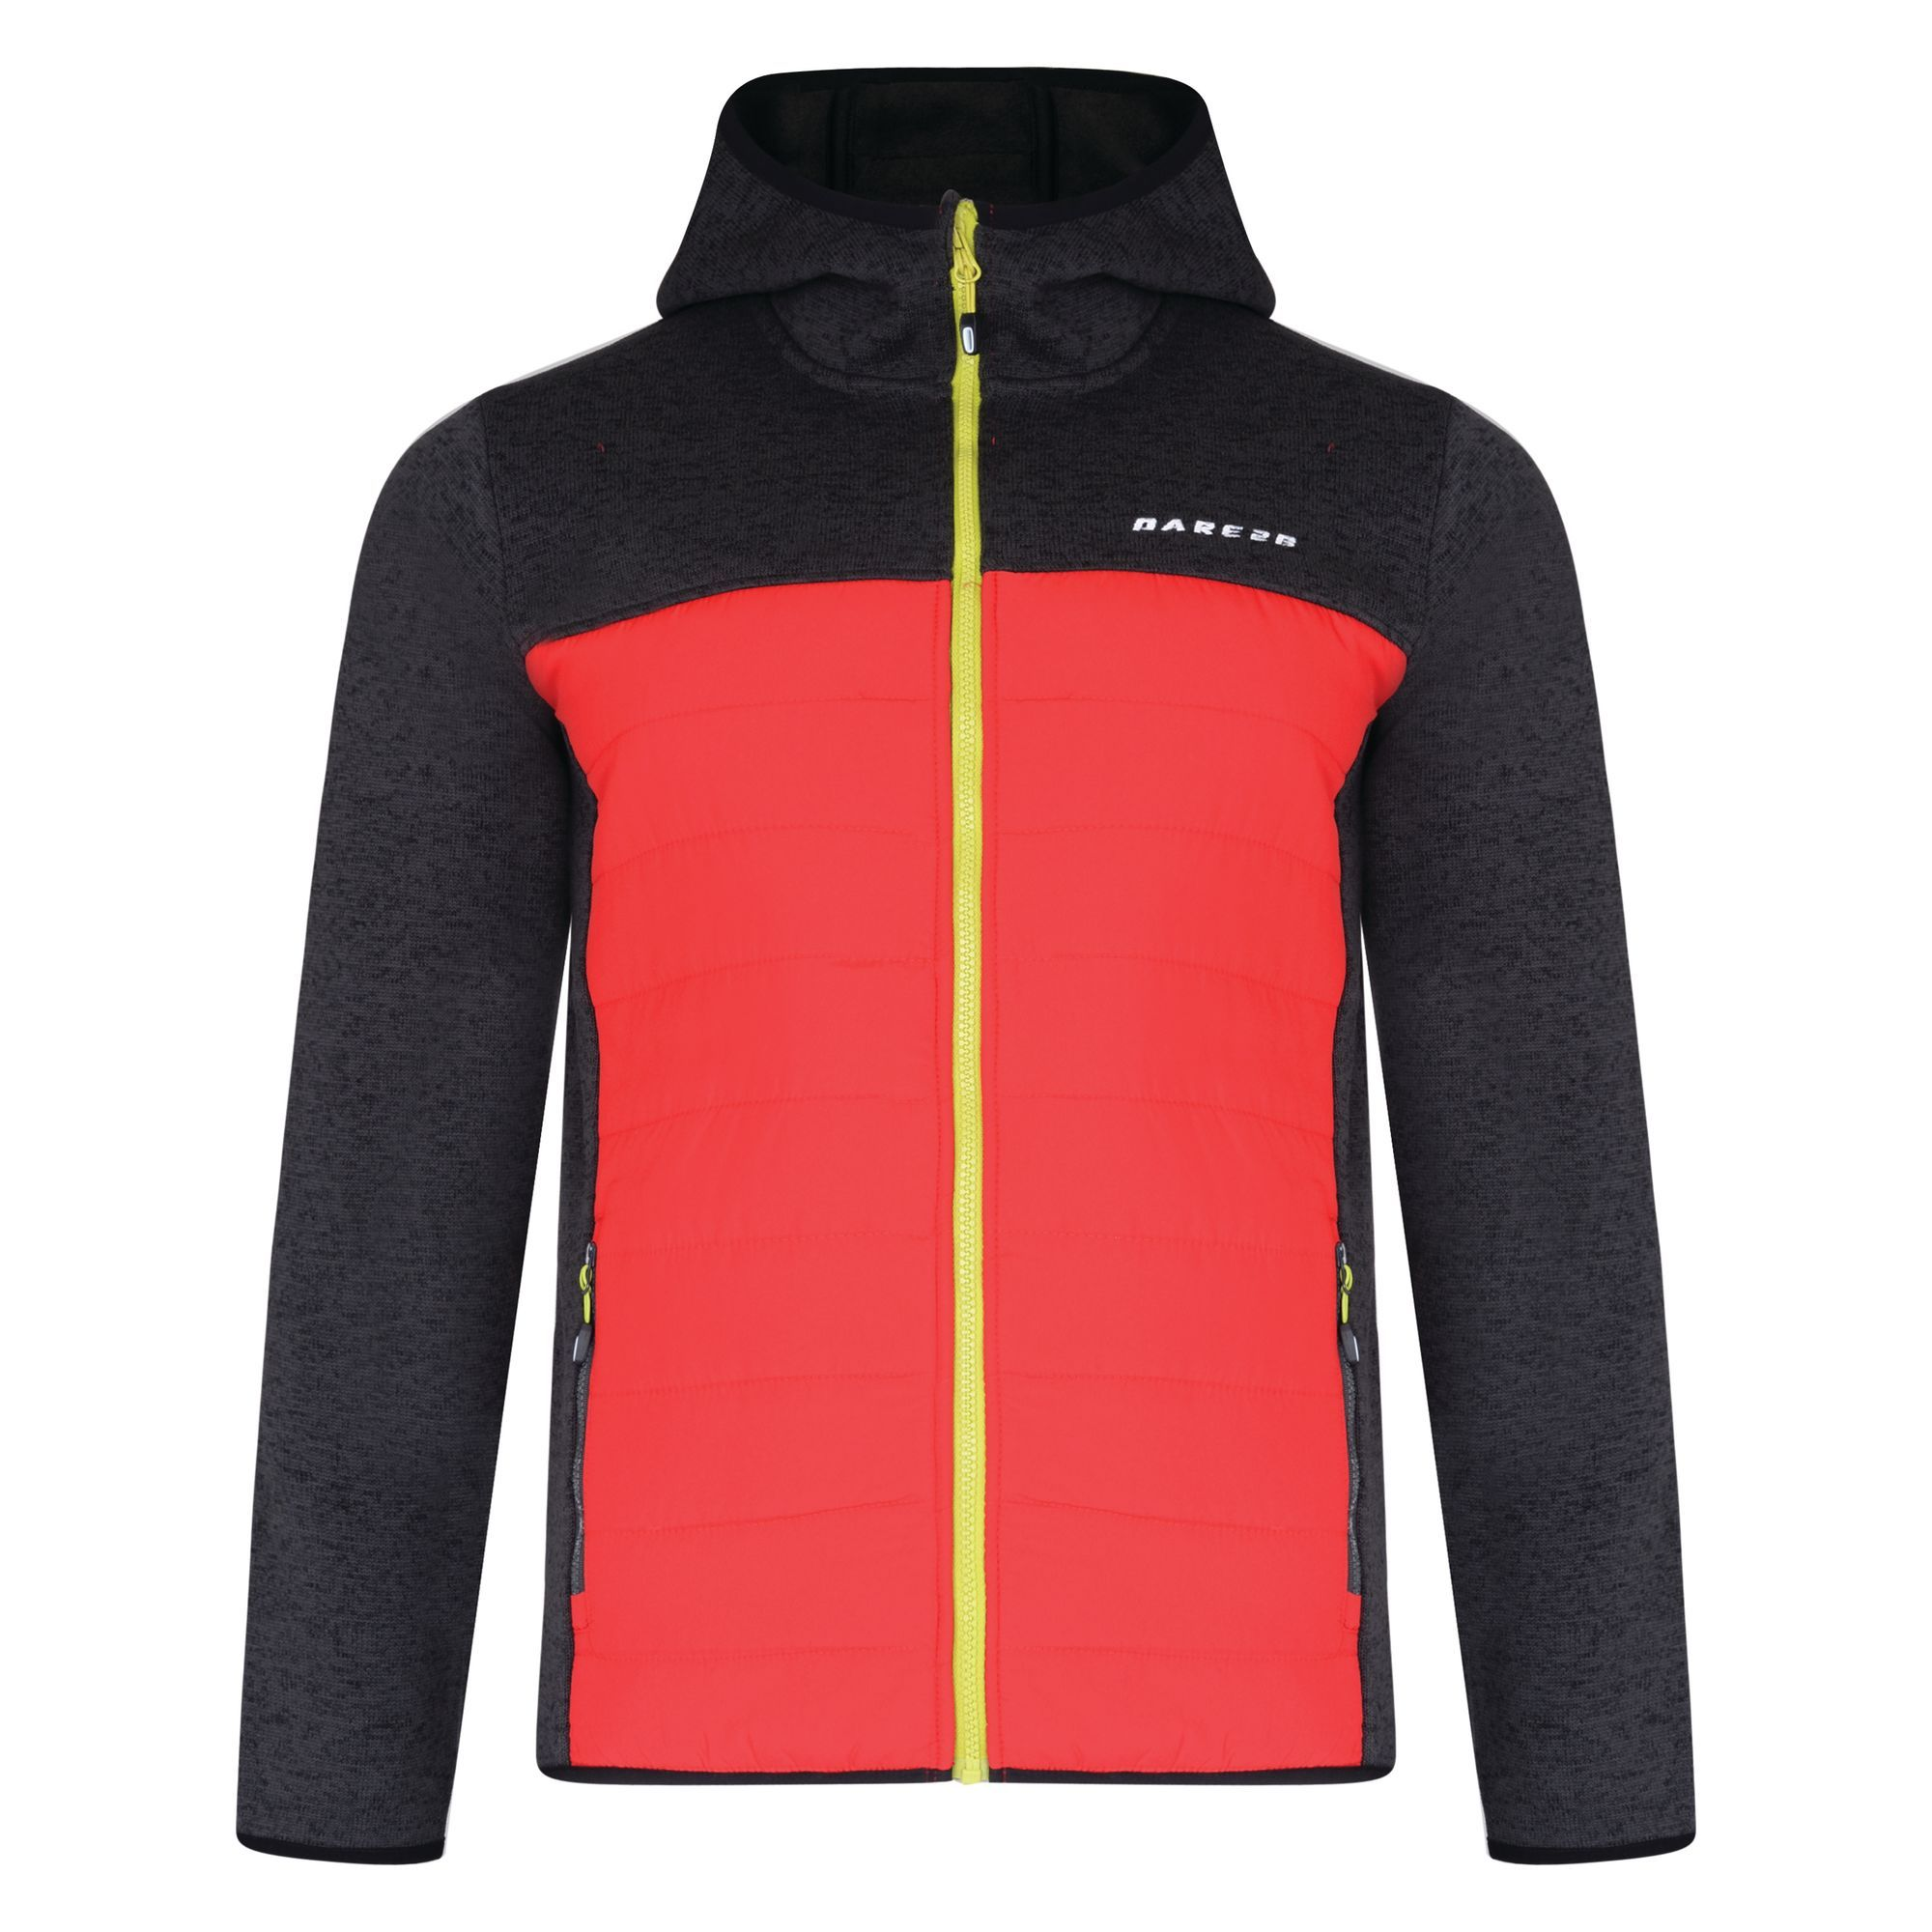 thumbnail 20 - Regatta Mens Softshell Soft Shell Jacket Massive Clearance RRP £60.00